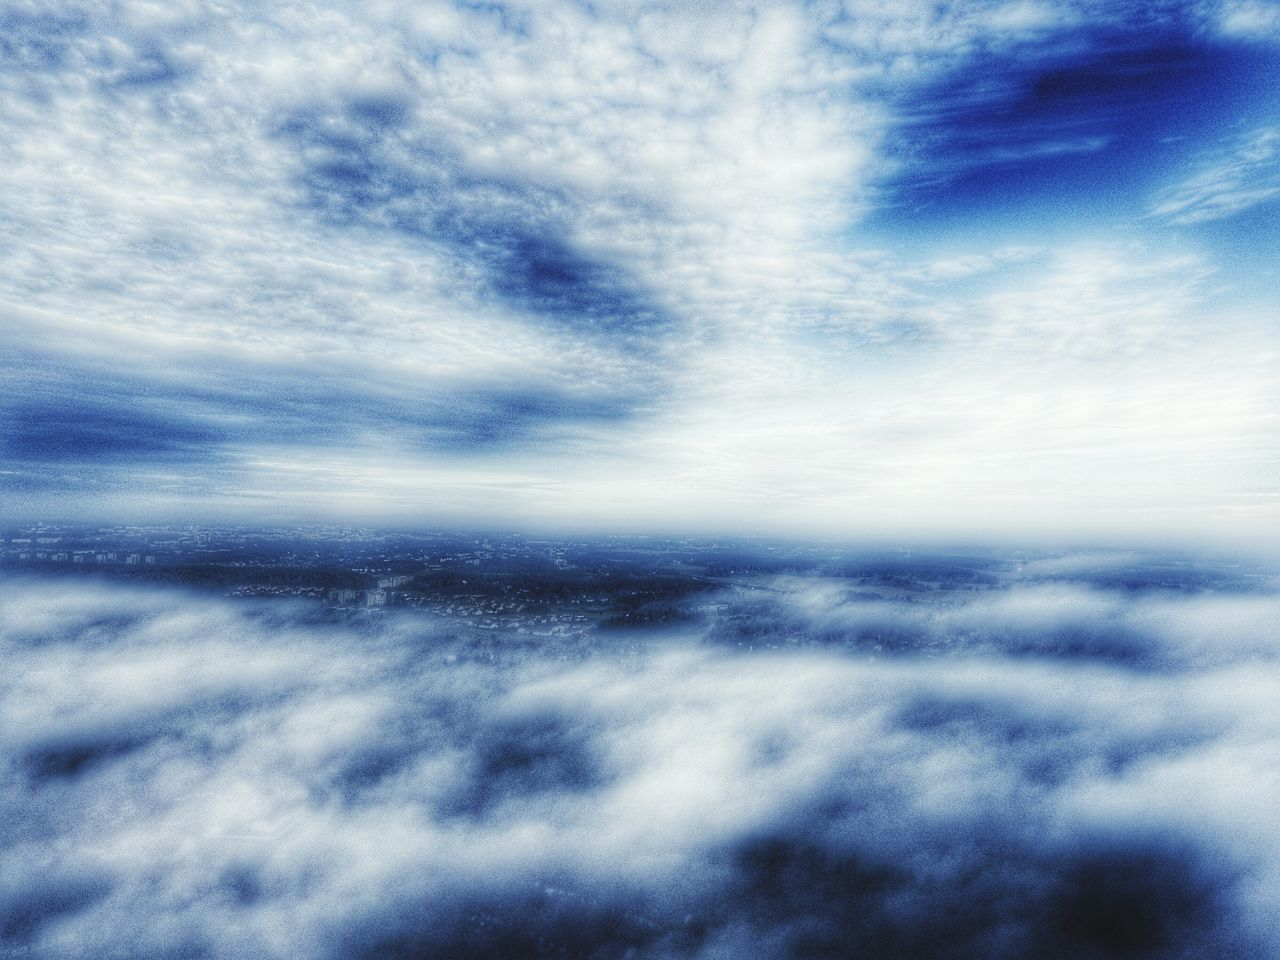 sky, cloud - sky, nature, scenics, beauty in nature, cloudscape, tranquil scene, backgrounds, tranquility, majestic, sky only, idyllic, blue, space, ethereal, no people, outdoors, awe, low angle view, day, astronomy, the natural world, star - space, galaxy